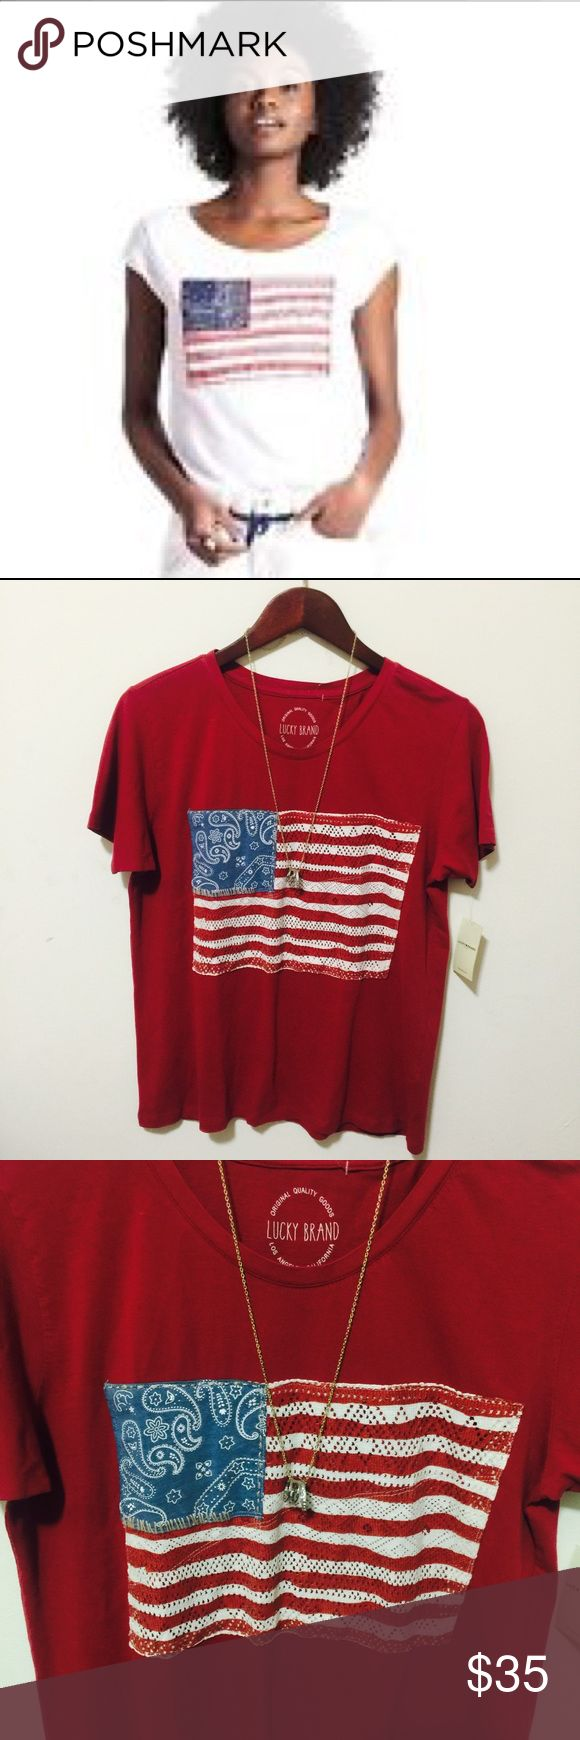 ‼️1DAYSALE‼️LUCKY BRAND PAISLEY AMERICA FLAG SHIRT NWT REATIL PRICE $59 PAISLEY AMERICAN FLAG SHIRT ITS RED NOT WHITE SHIRT SIZE LG LEN 25 PIT TO PIT 20 PLEASE ASK ANY QUESTIONS ❤️❤️NEW INVENTORY❤️❤️  ✅BUNDLE AND SAVE ON SHIPPING 20% OFF ON ANY BUNDLES MY PRICES ARE GREAT AND THERE NWT OR NWOT UNLESS STATED  THERE NAME BRAND SELLING THEM FOR CHEAP✅  ***DONT FORGET TO FOLLOW I DELETE AND RELIST***  # GREAT DEALS Lucky Brand Tops Tees - Short Sleeve